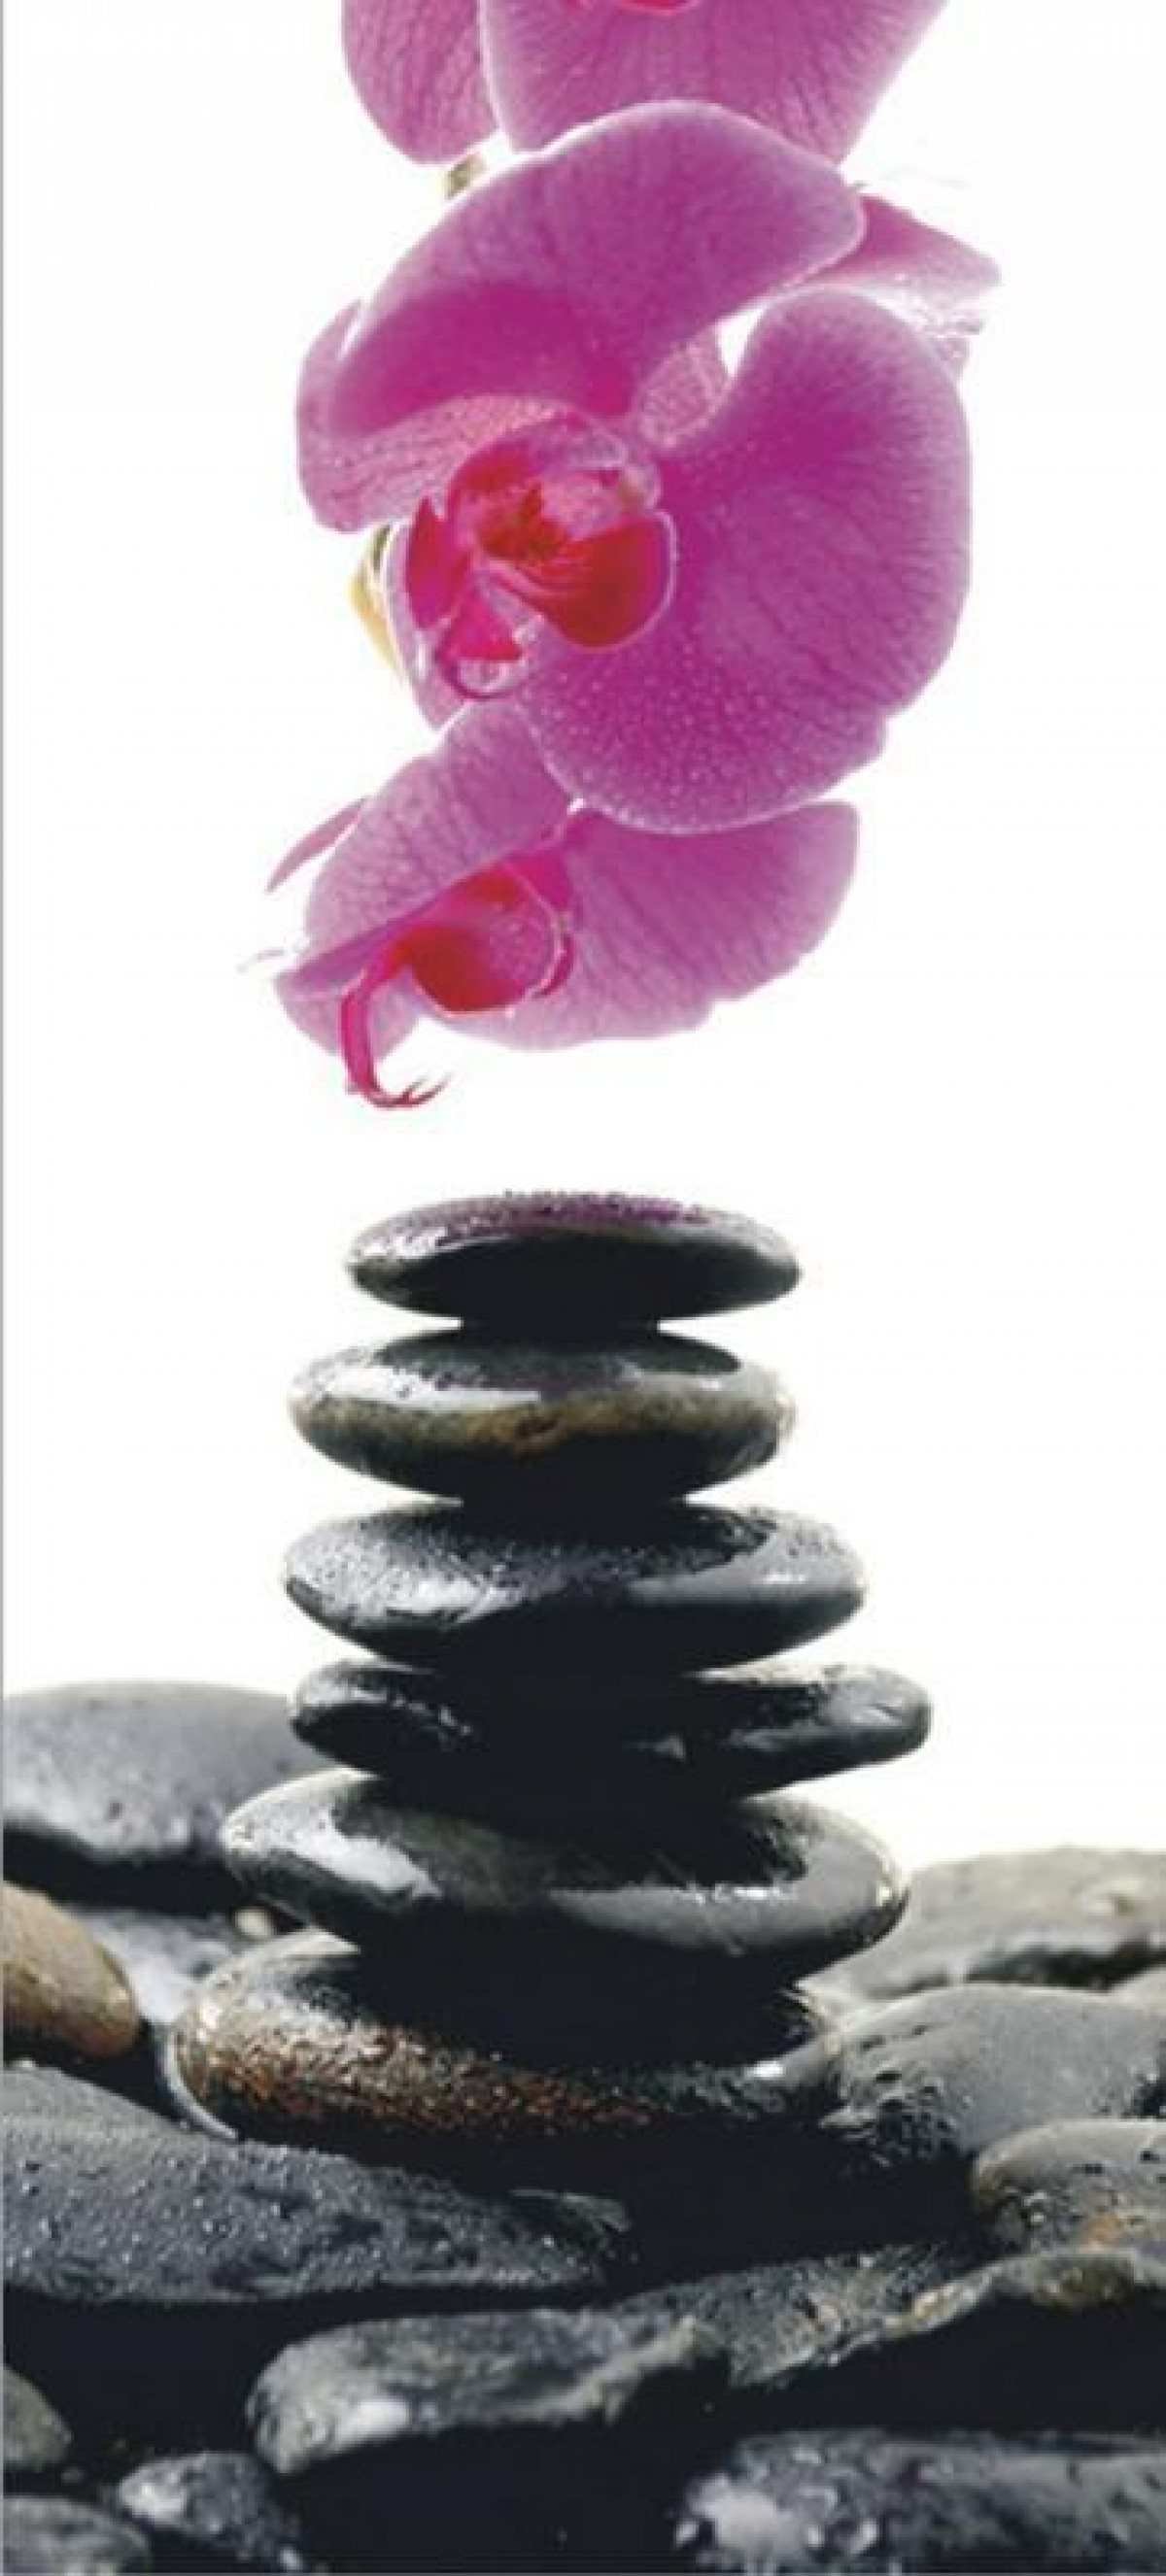 Stones and orchid, paper photo mural, 90x202 cm, 1 part